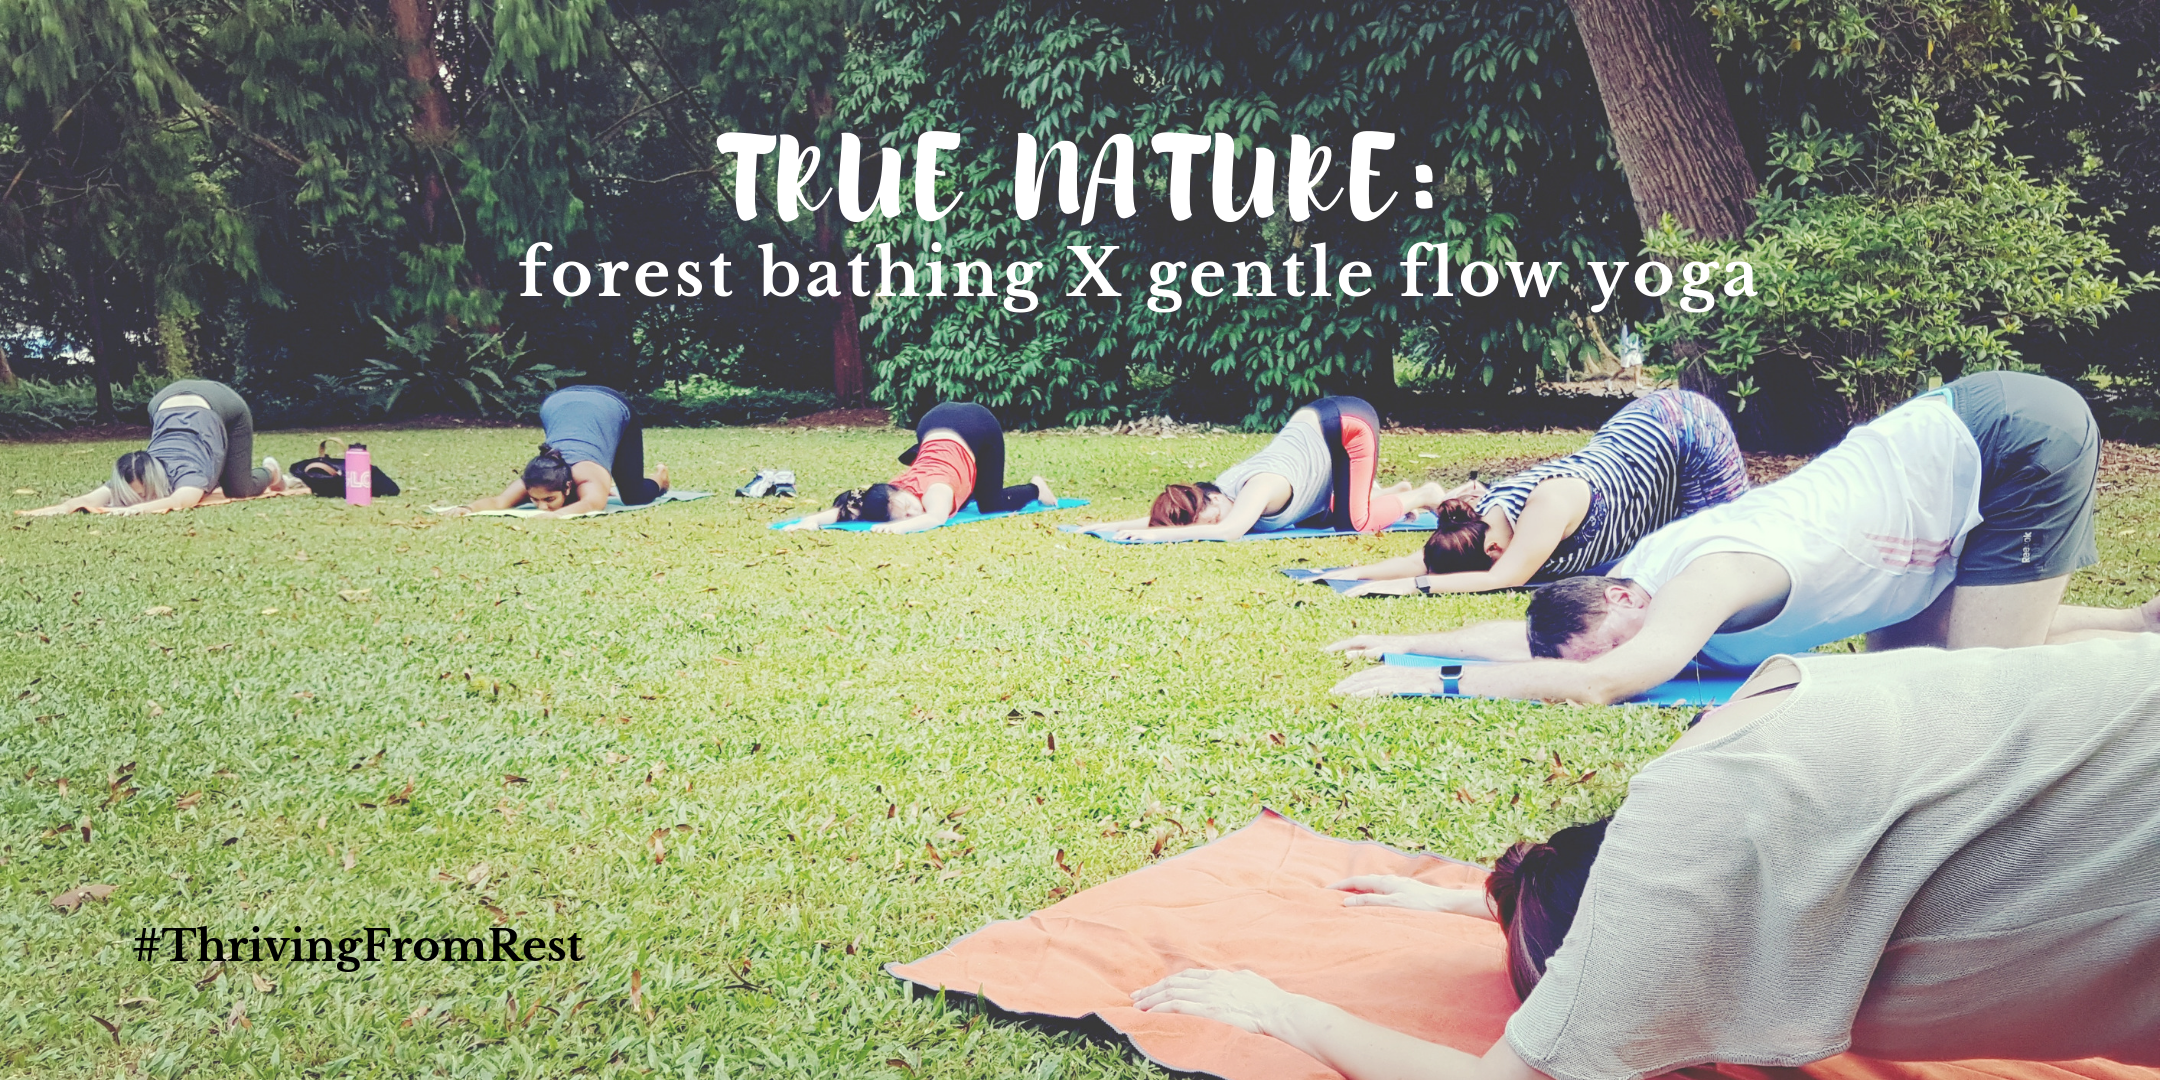 True Nature: forest bathing X gentle flow yoga, Singapore